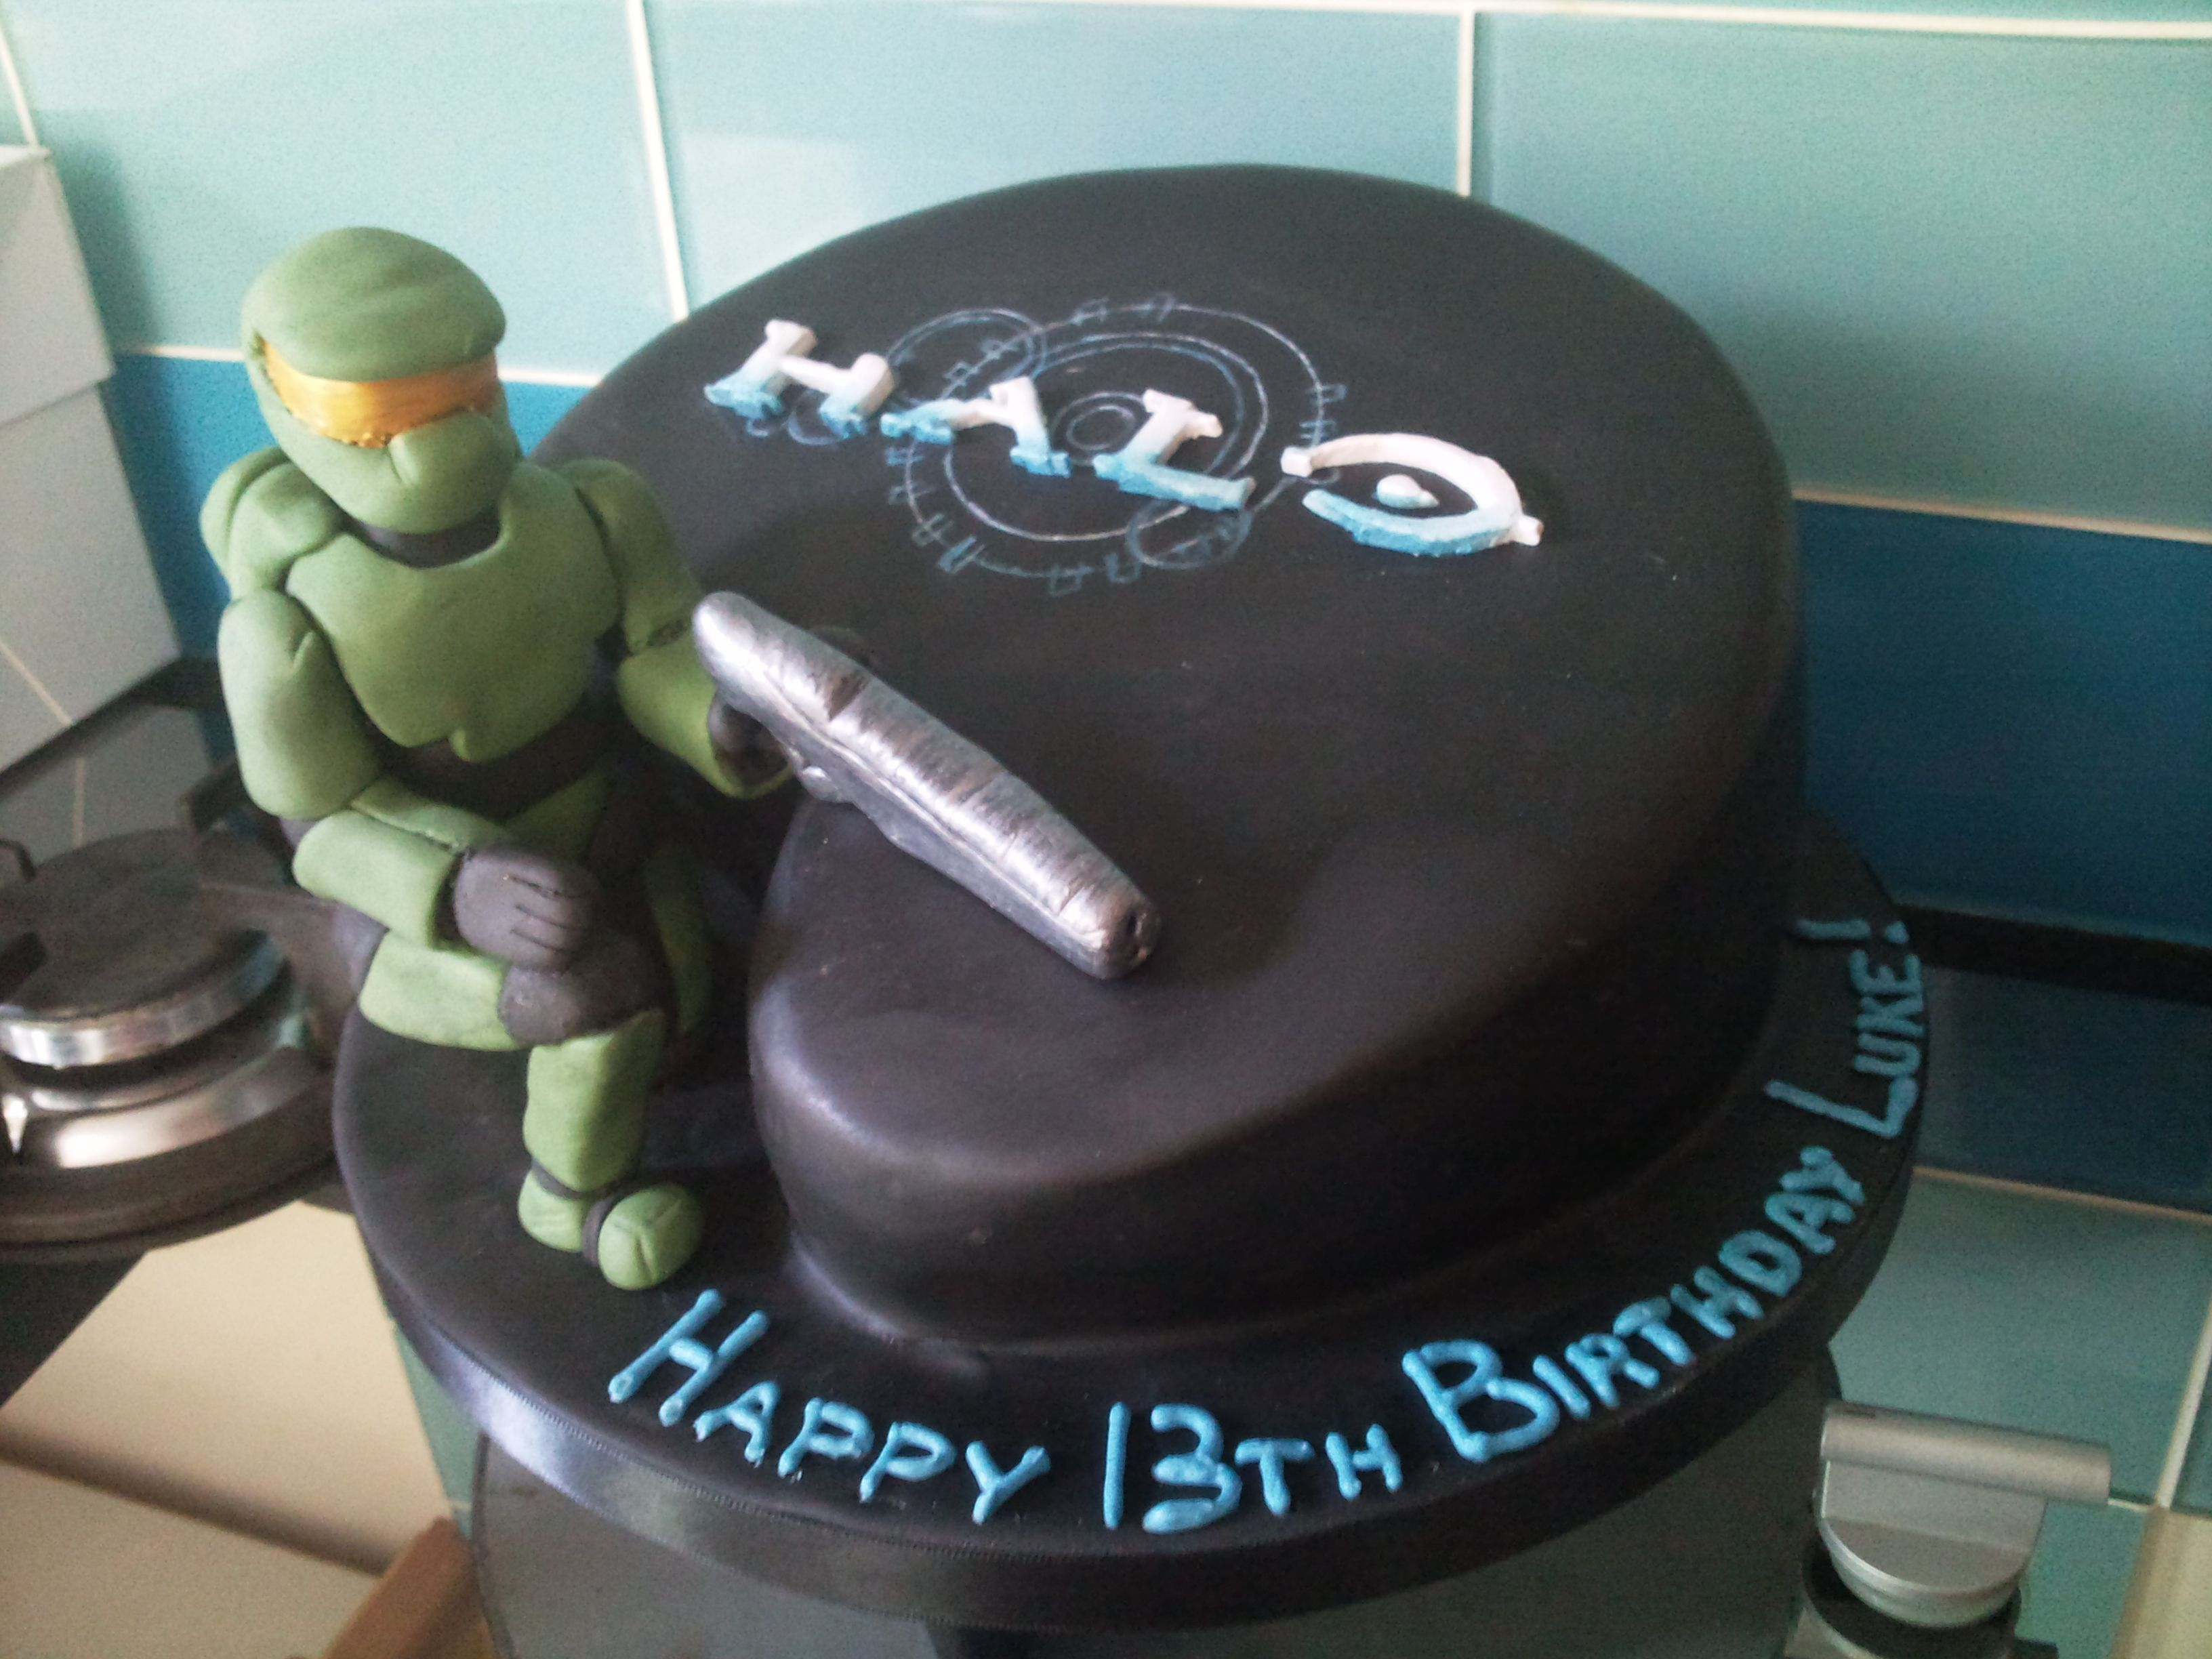 Halo 13th birthday cake Desserts Pinterest 13th birthday cakes